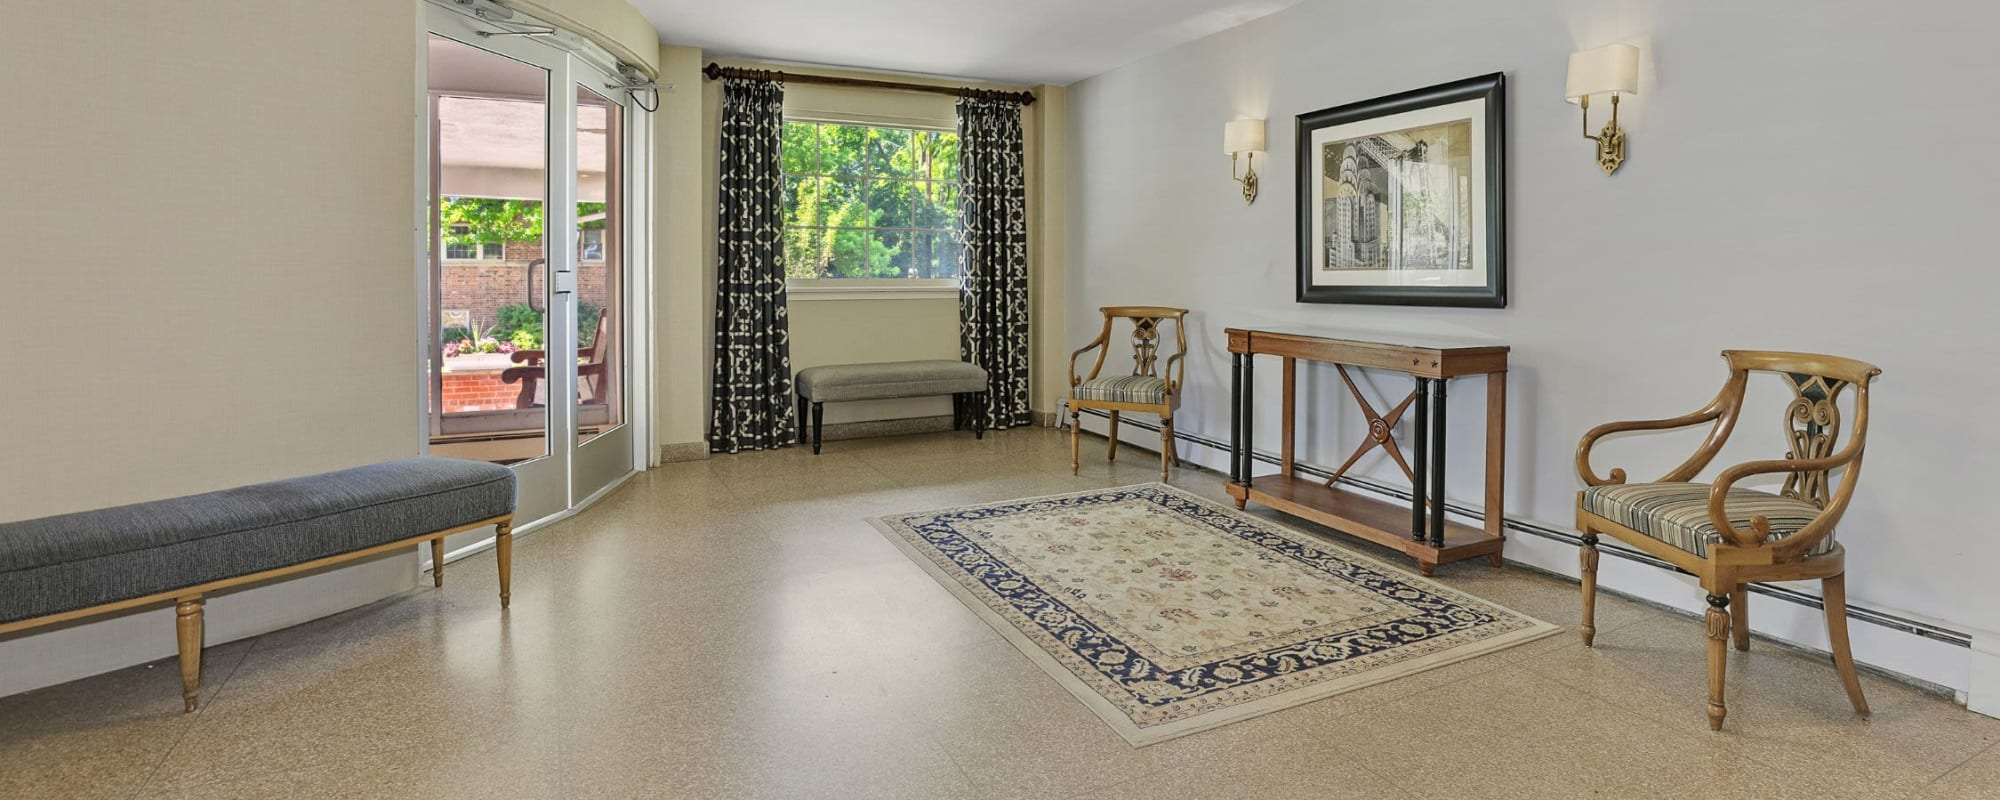 Amenities at Hamilton Court in Morristown, New Jersey